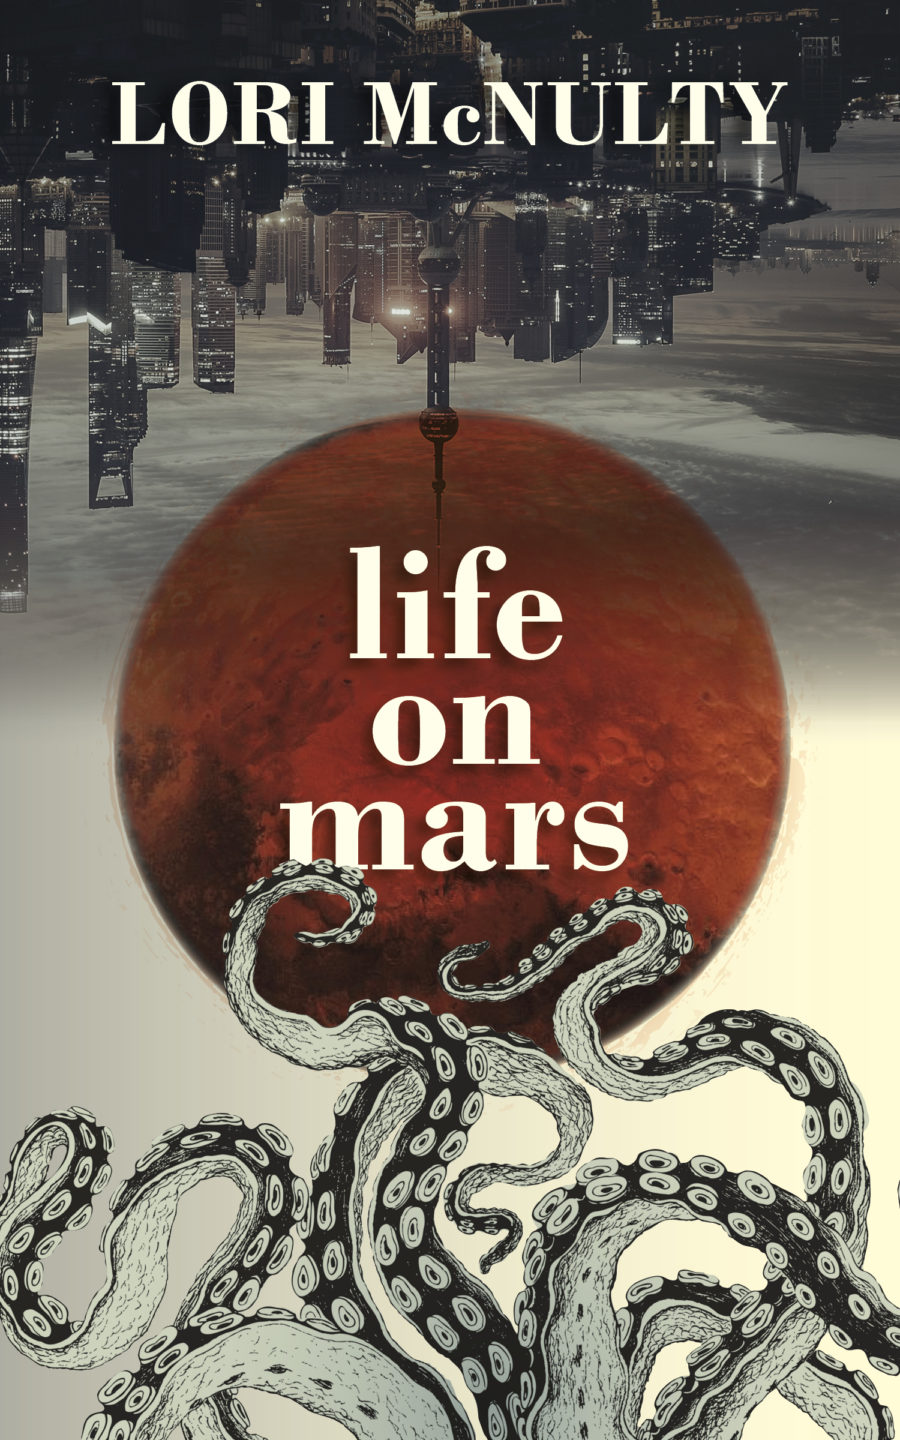 Life on Mars, by Lori McNulty